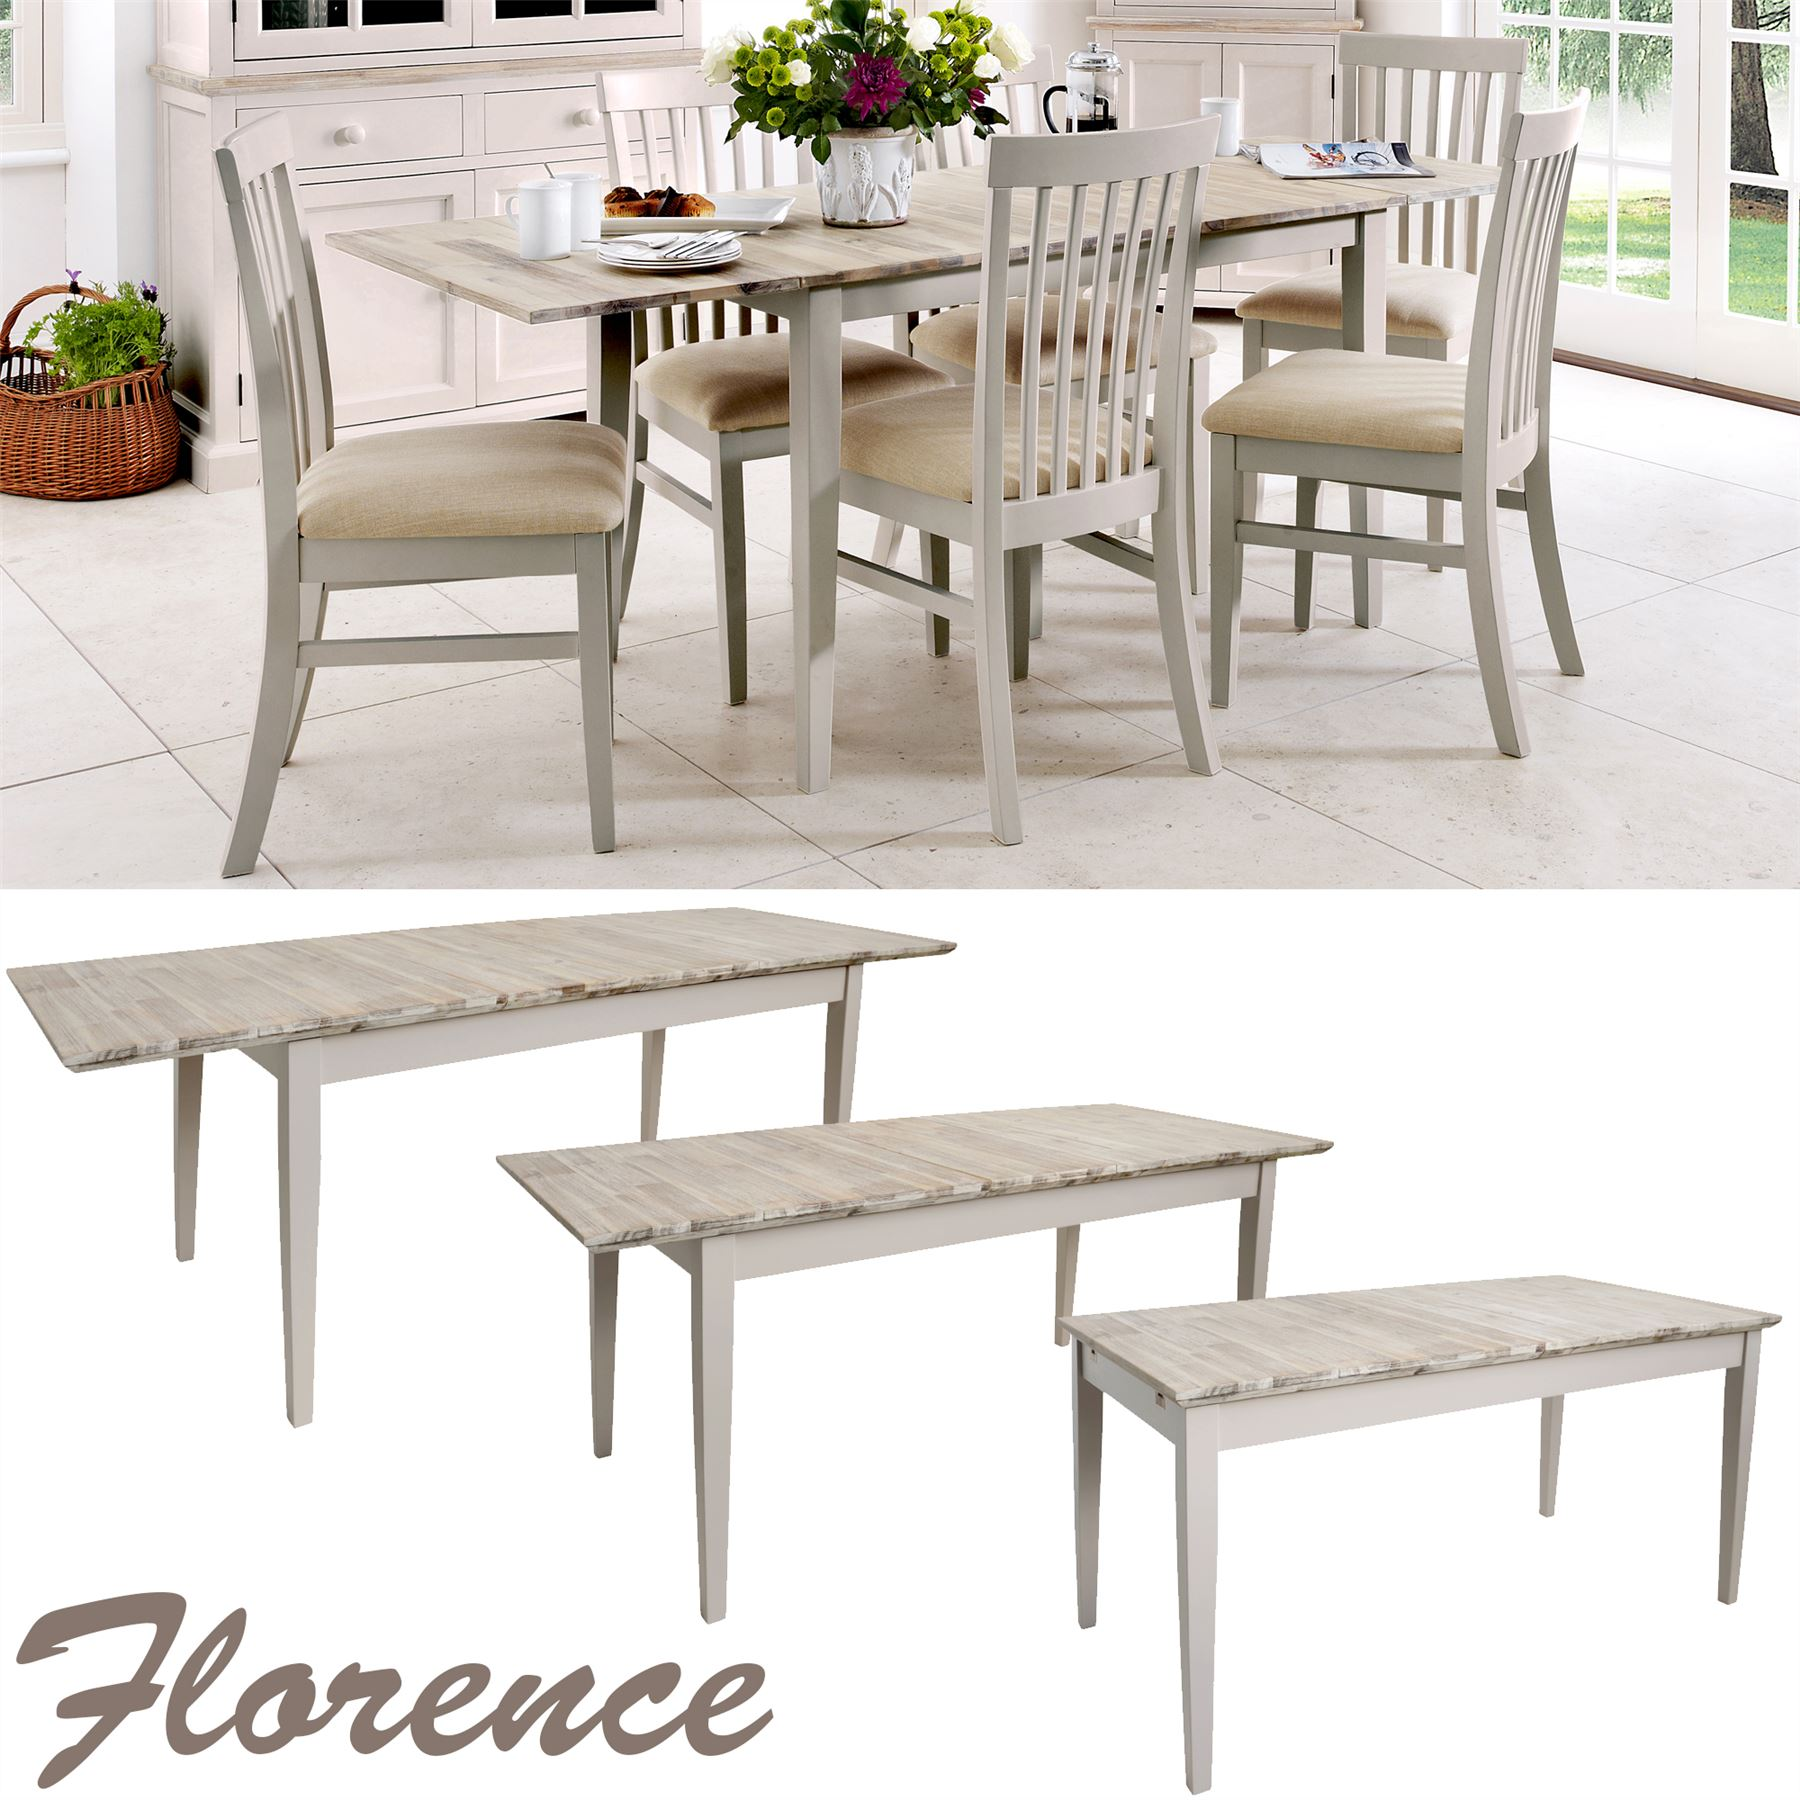 Rectangular Extendable Dining Table: Florence Rectangular Extending Table.Large Kitchen Dining